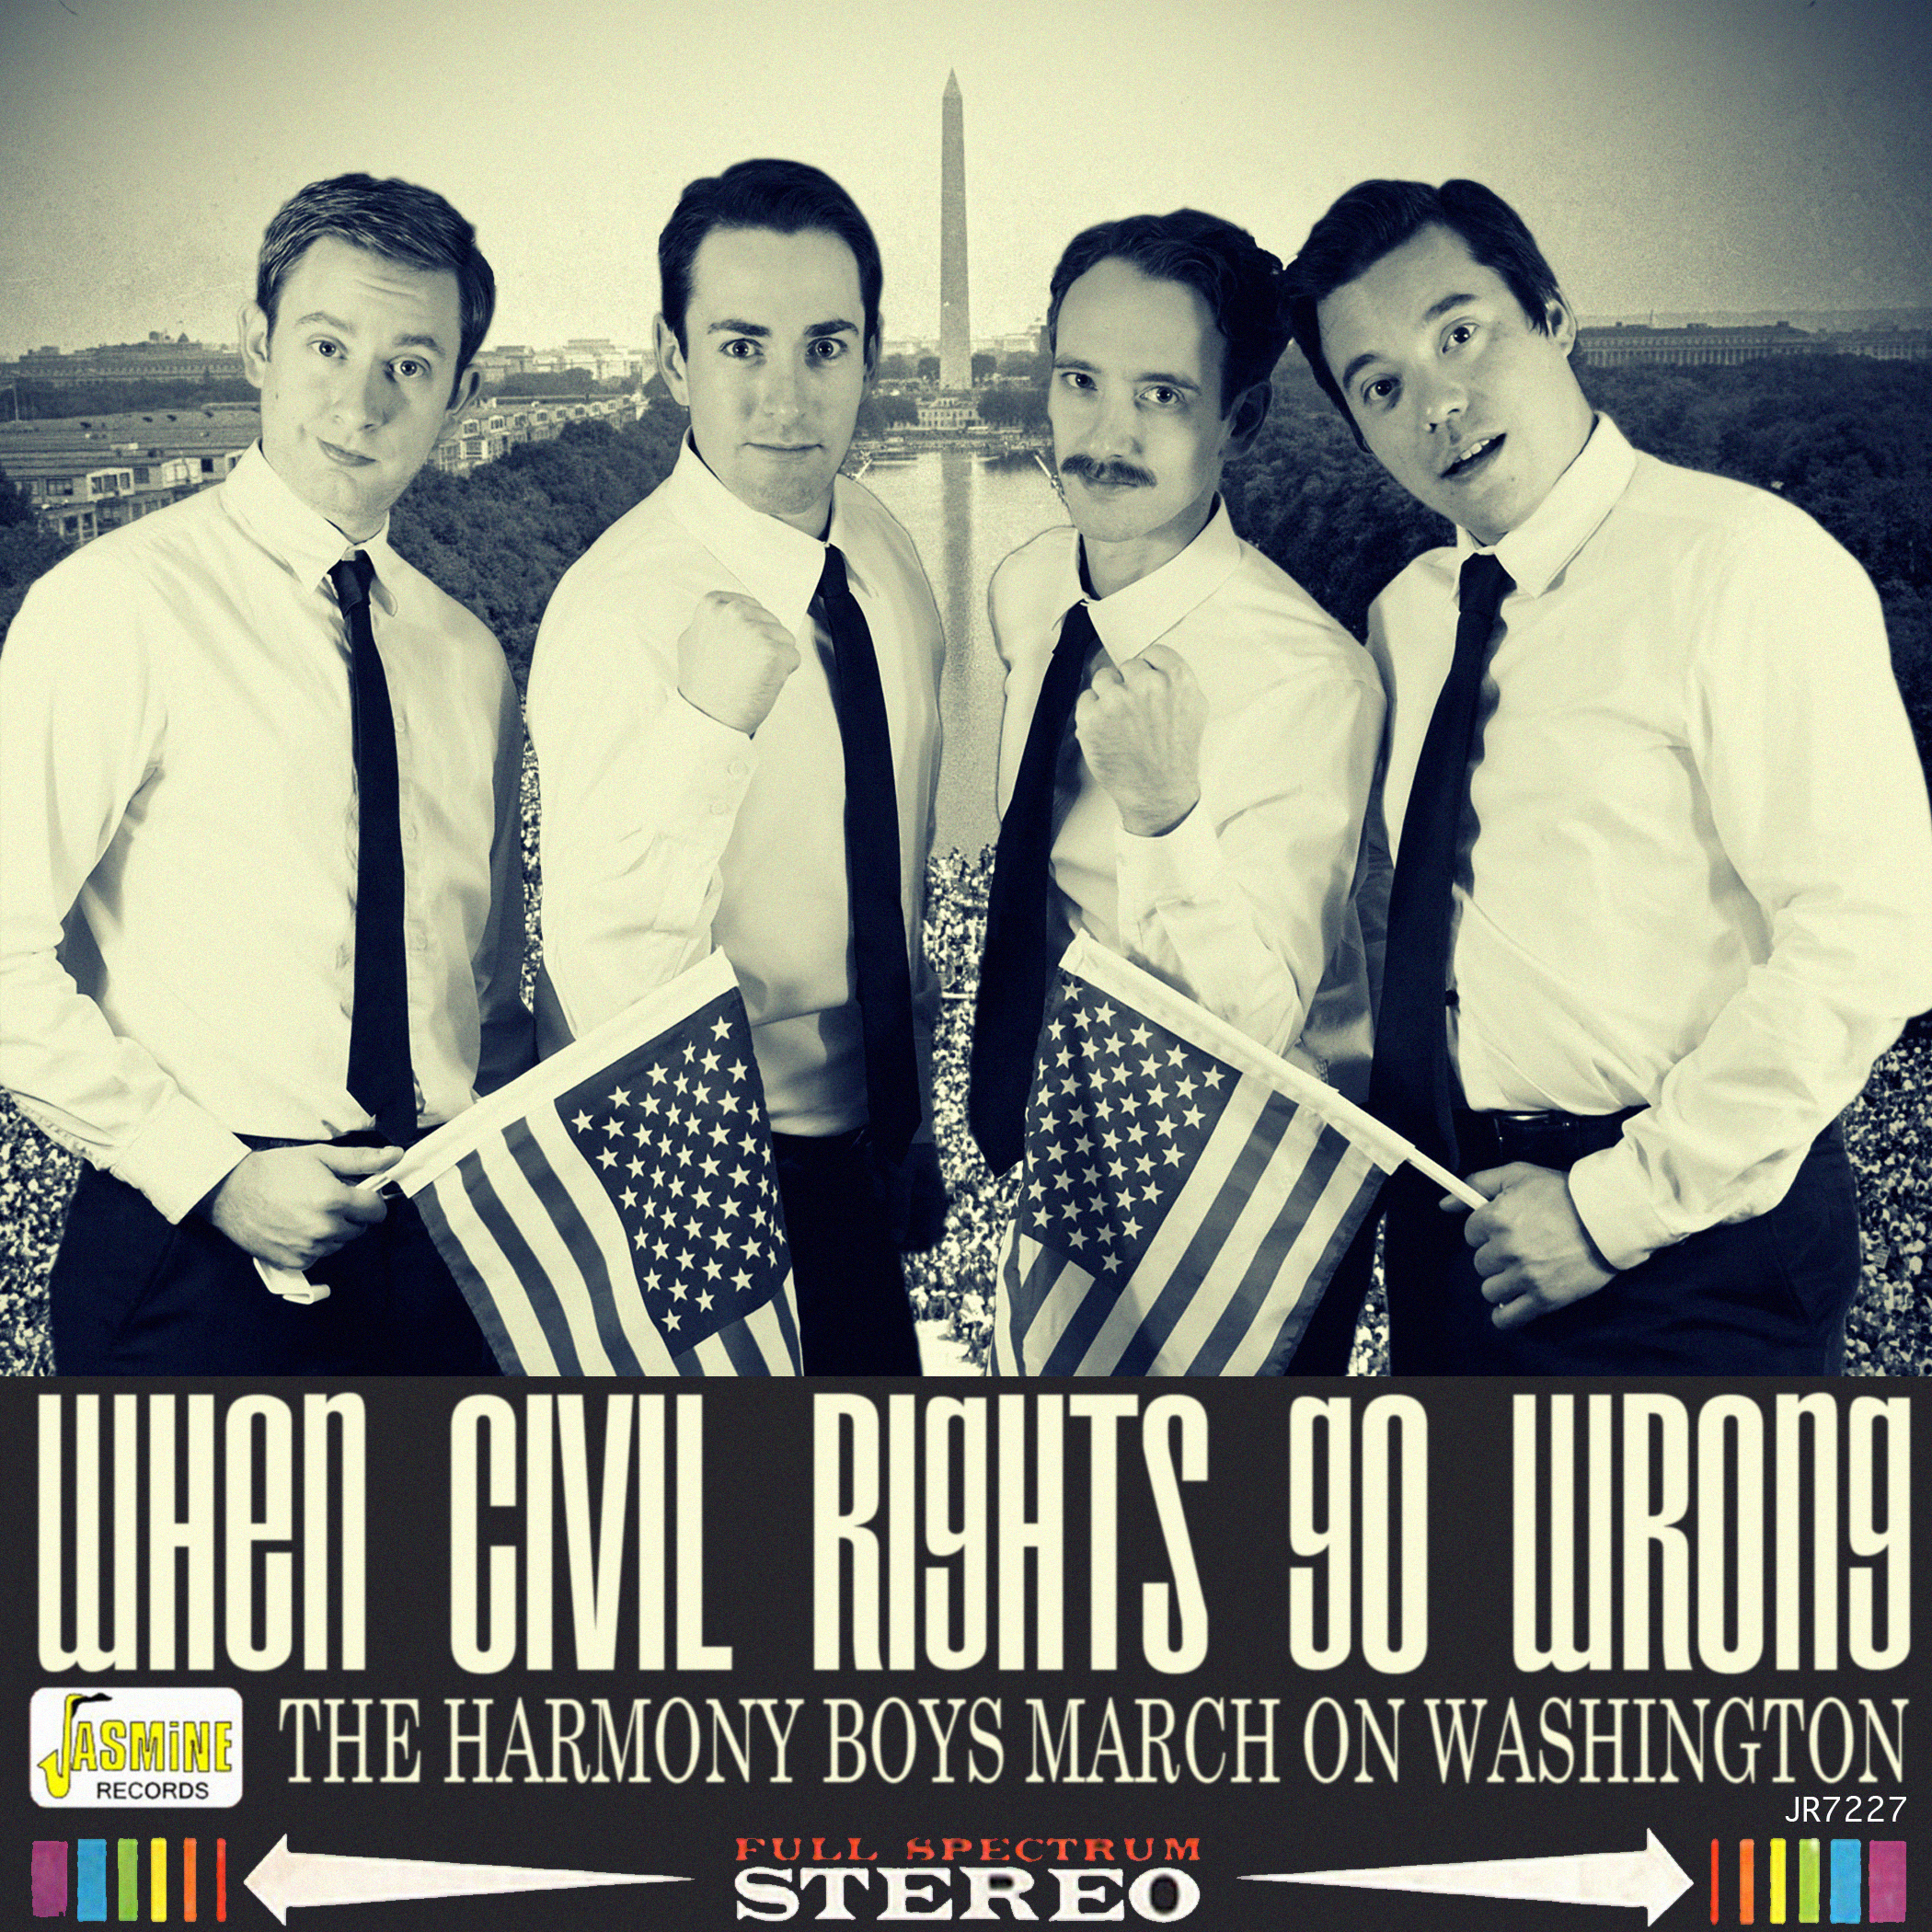 06_CIVILRIGHTS_ALBUM